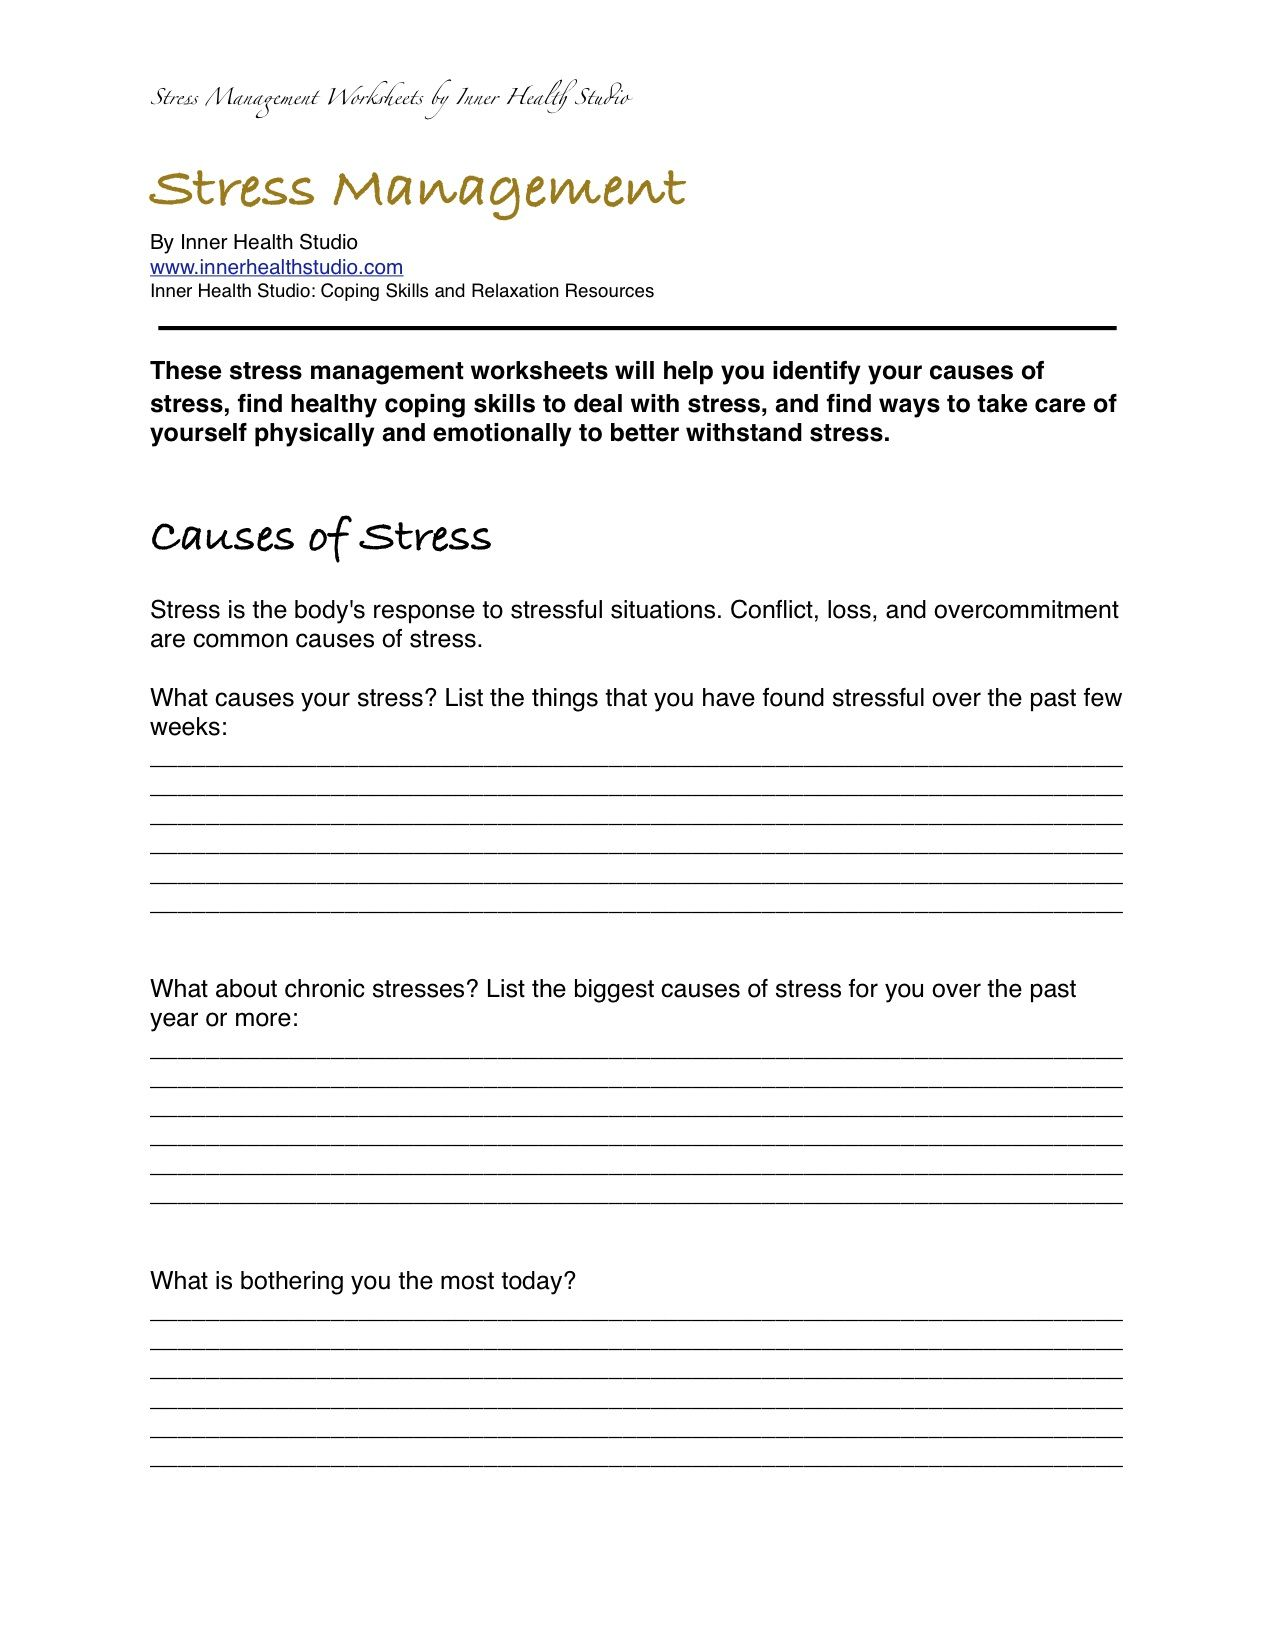 Stress Management Worksheets PDF Self Care Pinterest